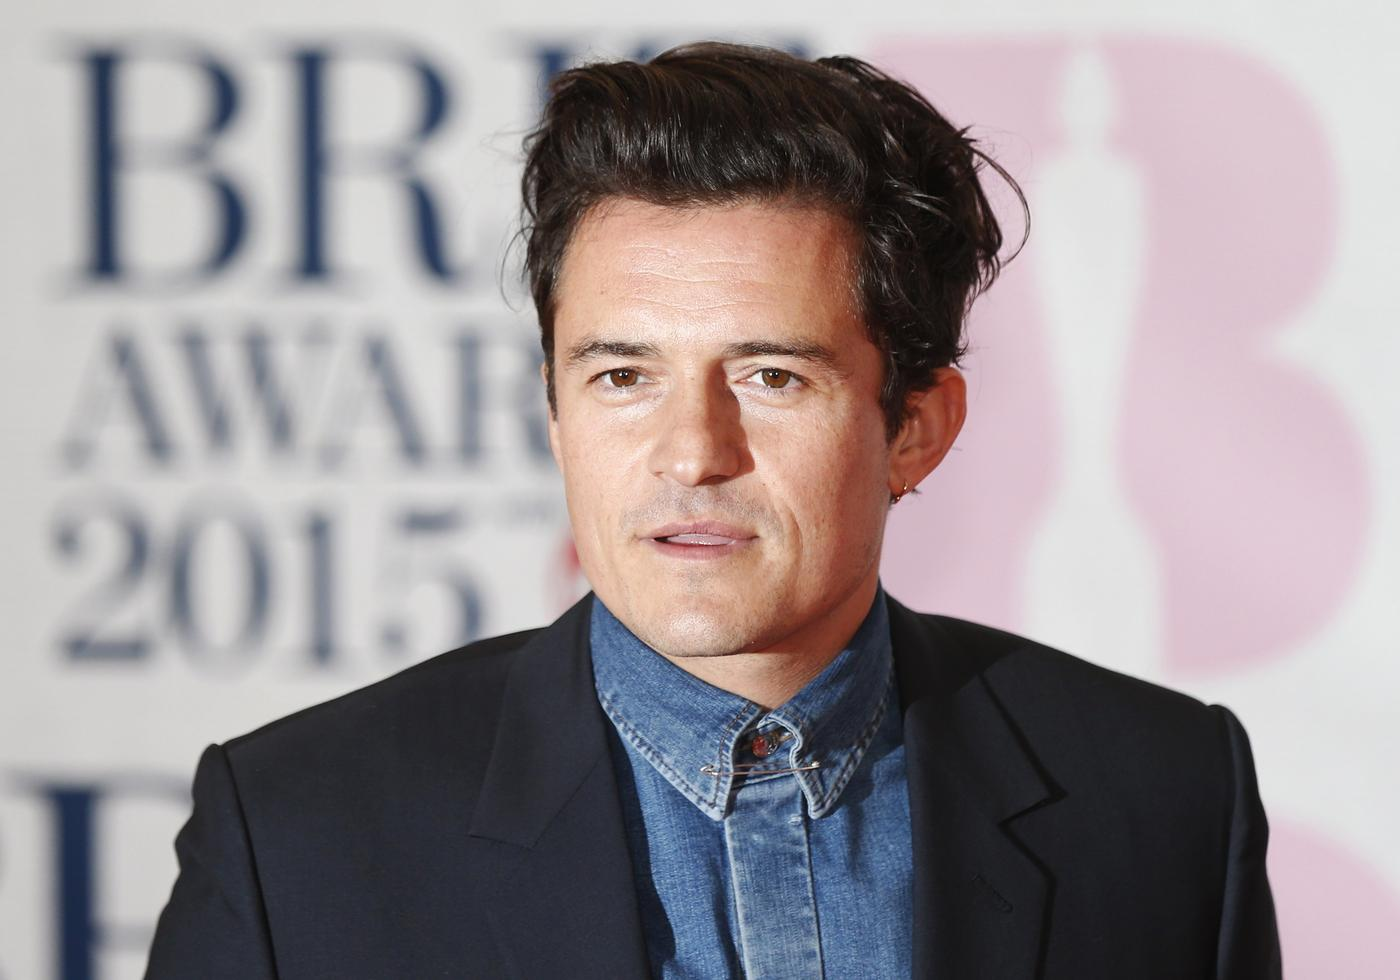 Orlando Bloom jokes he's about to embark on a music career after dishing out prize at Brit Awards